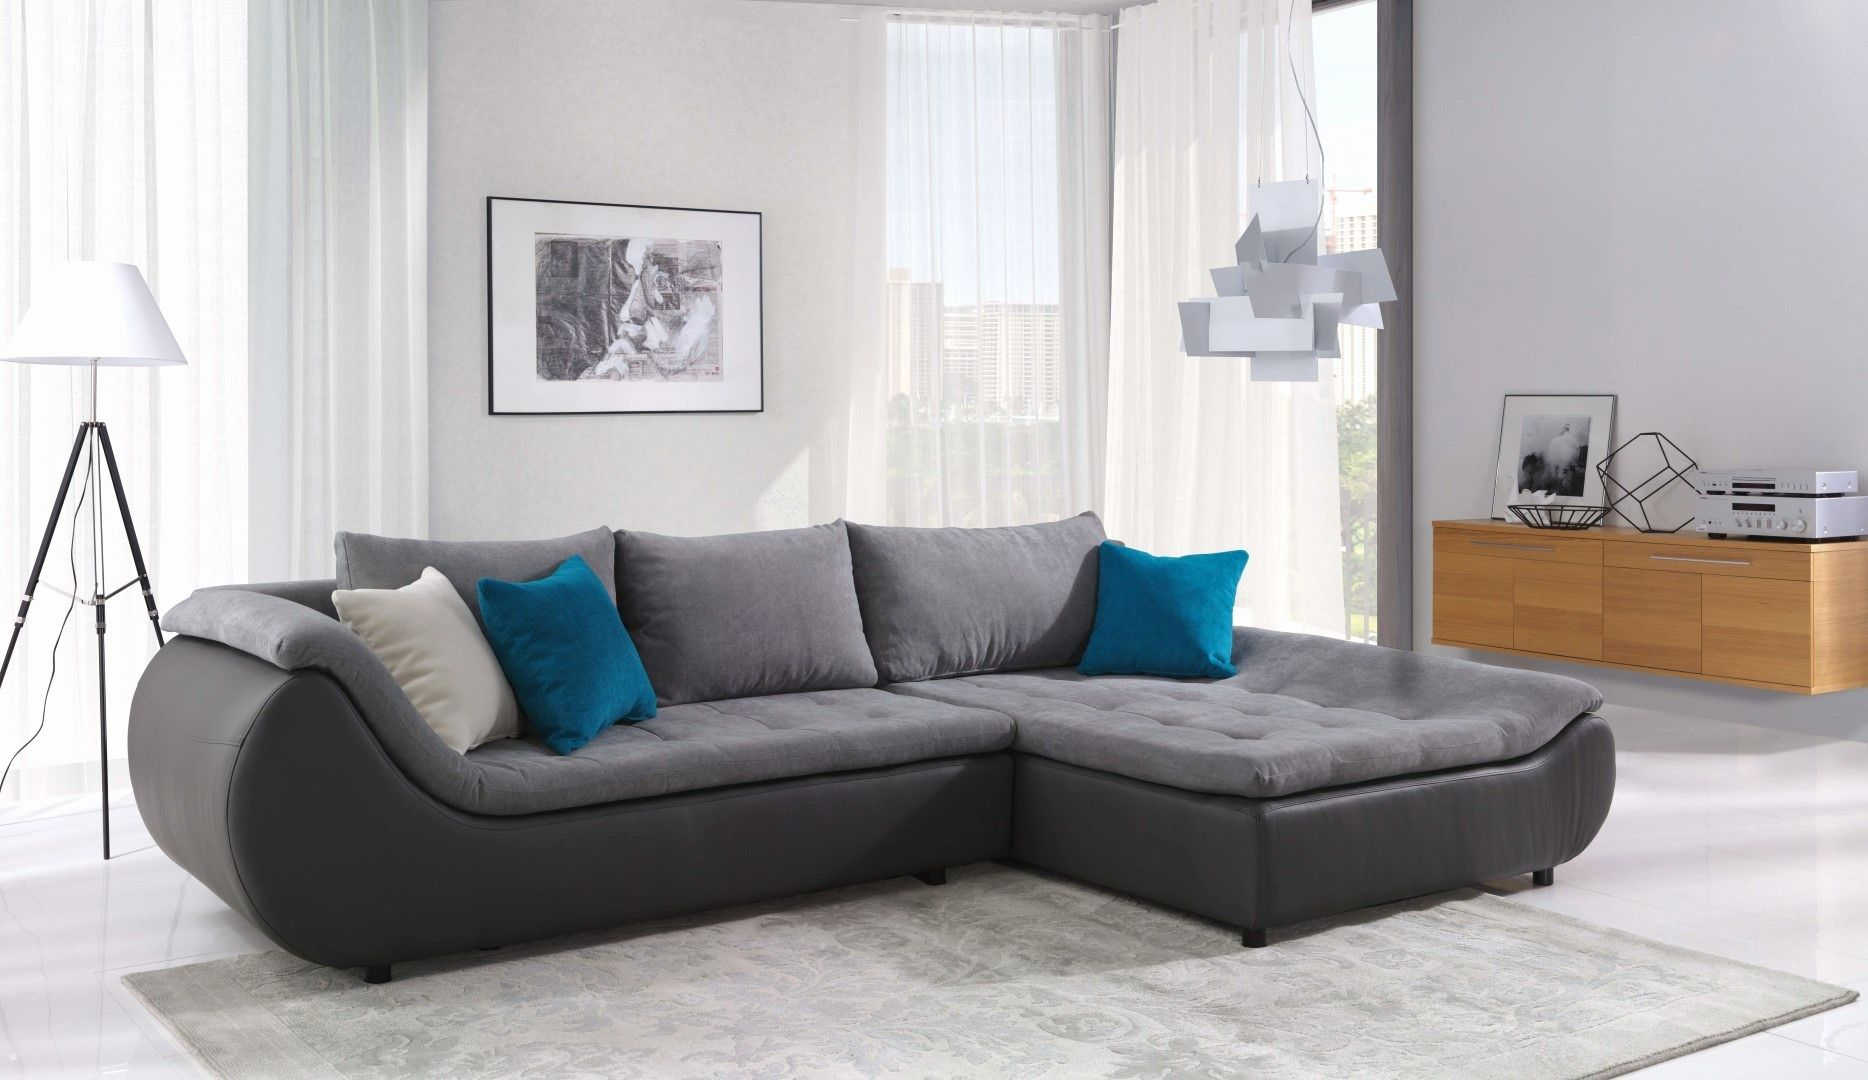 Beautiful Sectional Sofas Under 500 Graphics Sectional Sofas Under 500 Fresh Awesome Living Room S Contemporary Sectional Sofa Sectional Sofa Modern Sofa Bed